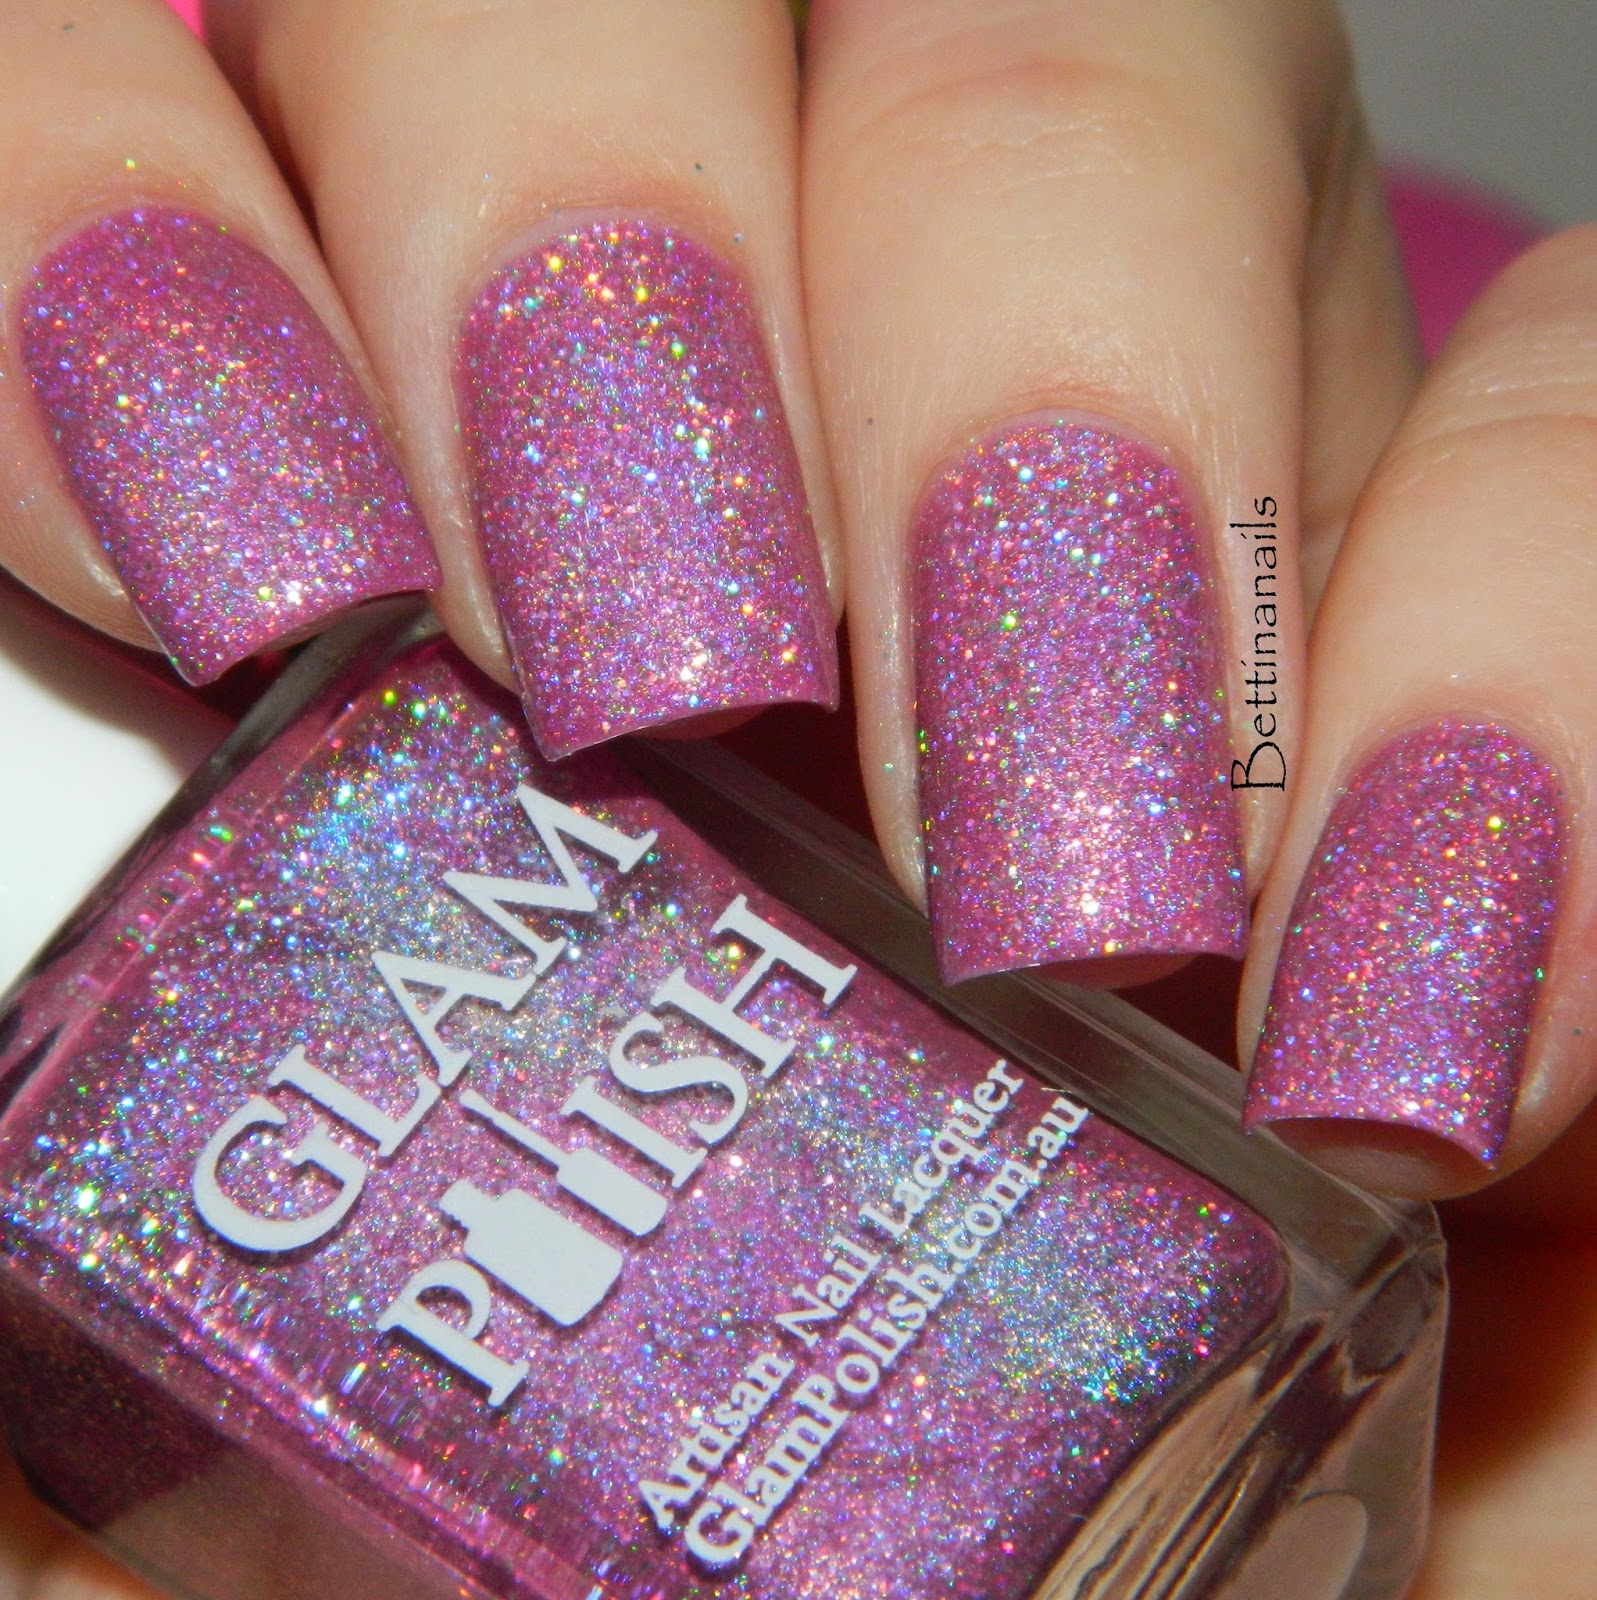 Bettina Nails: Knockout Collection Part 2 by Glam Polish